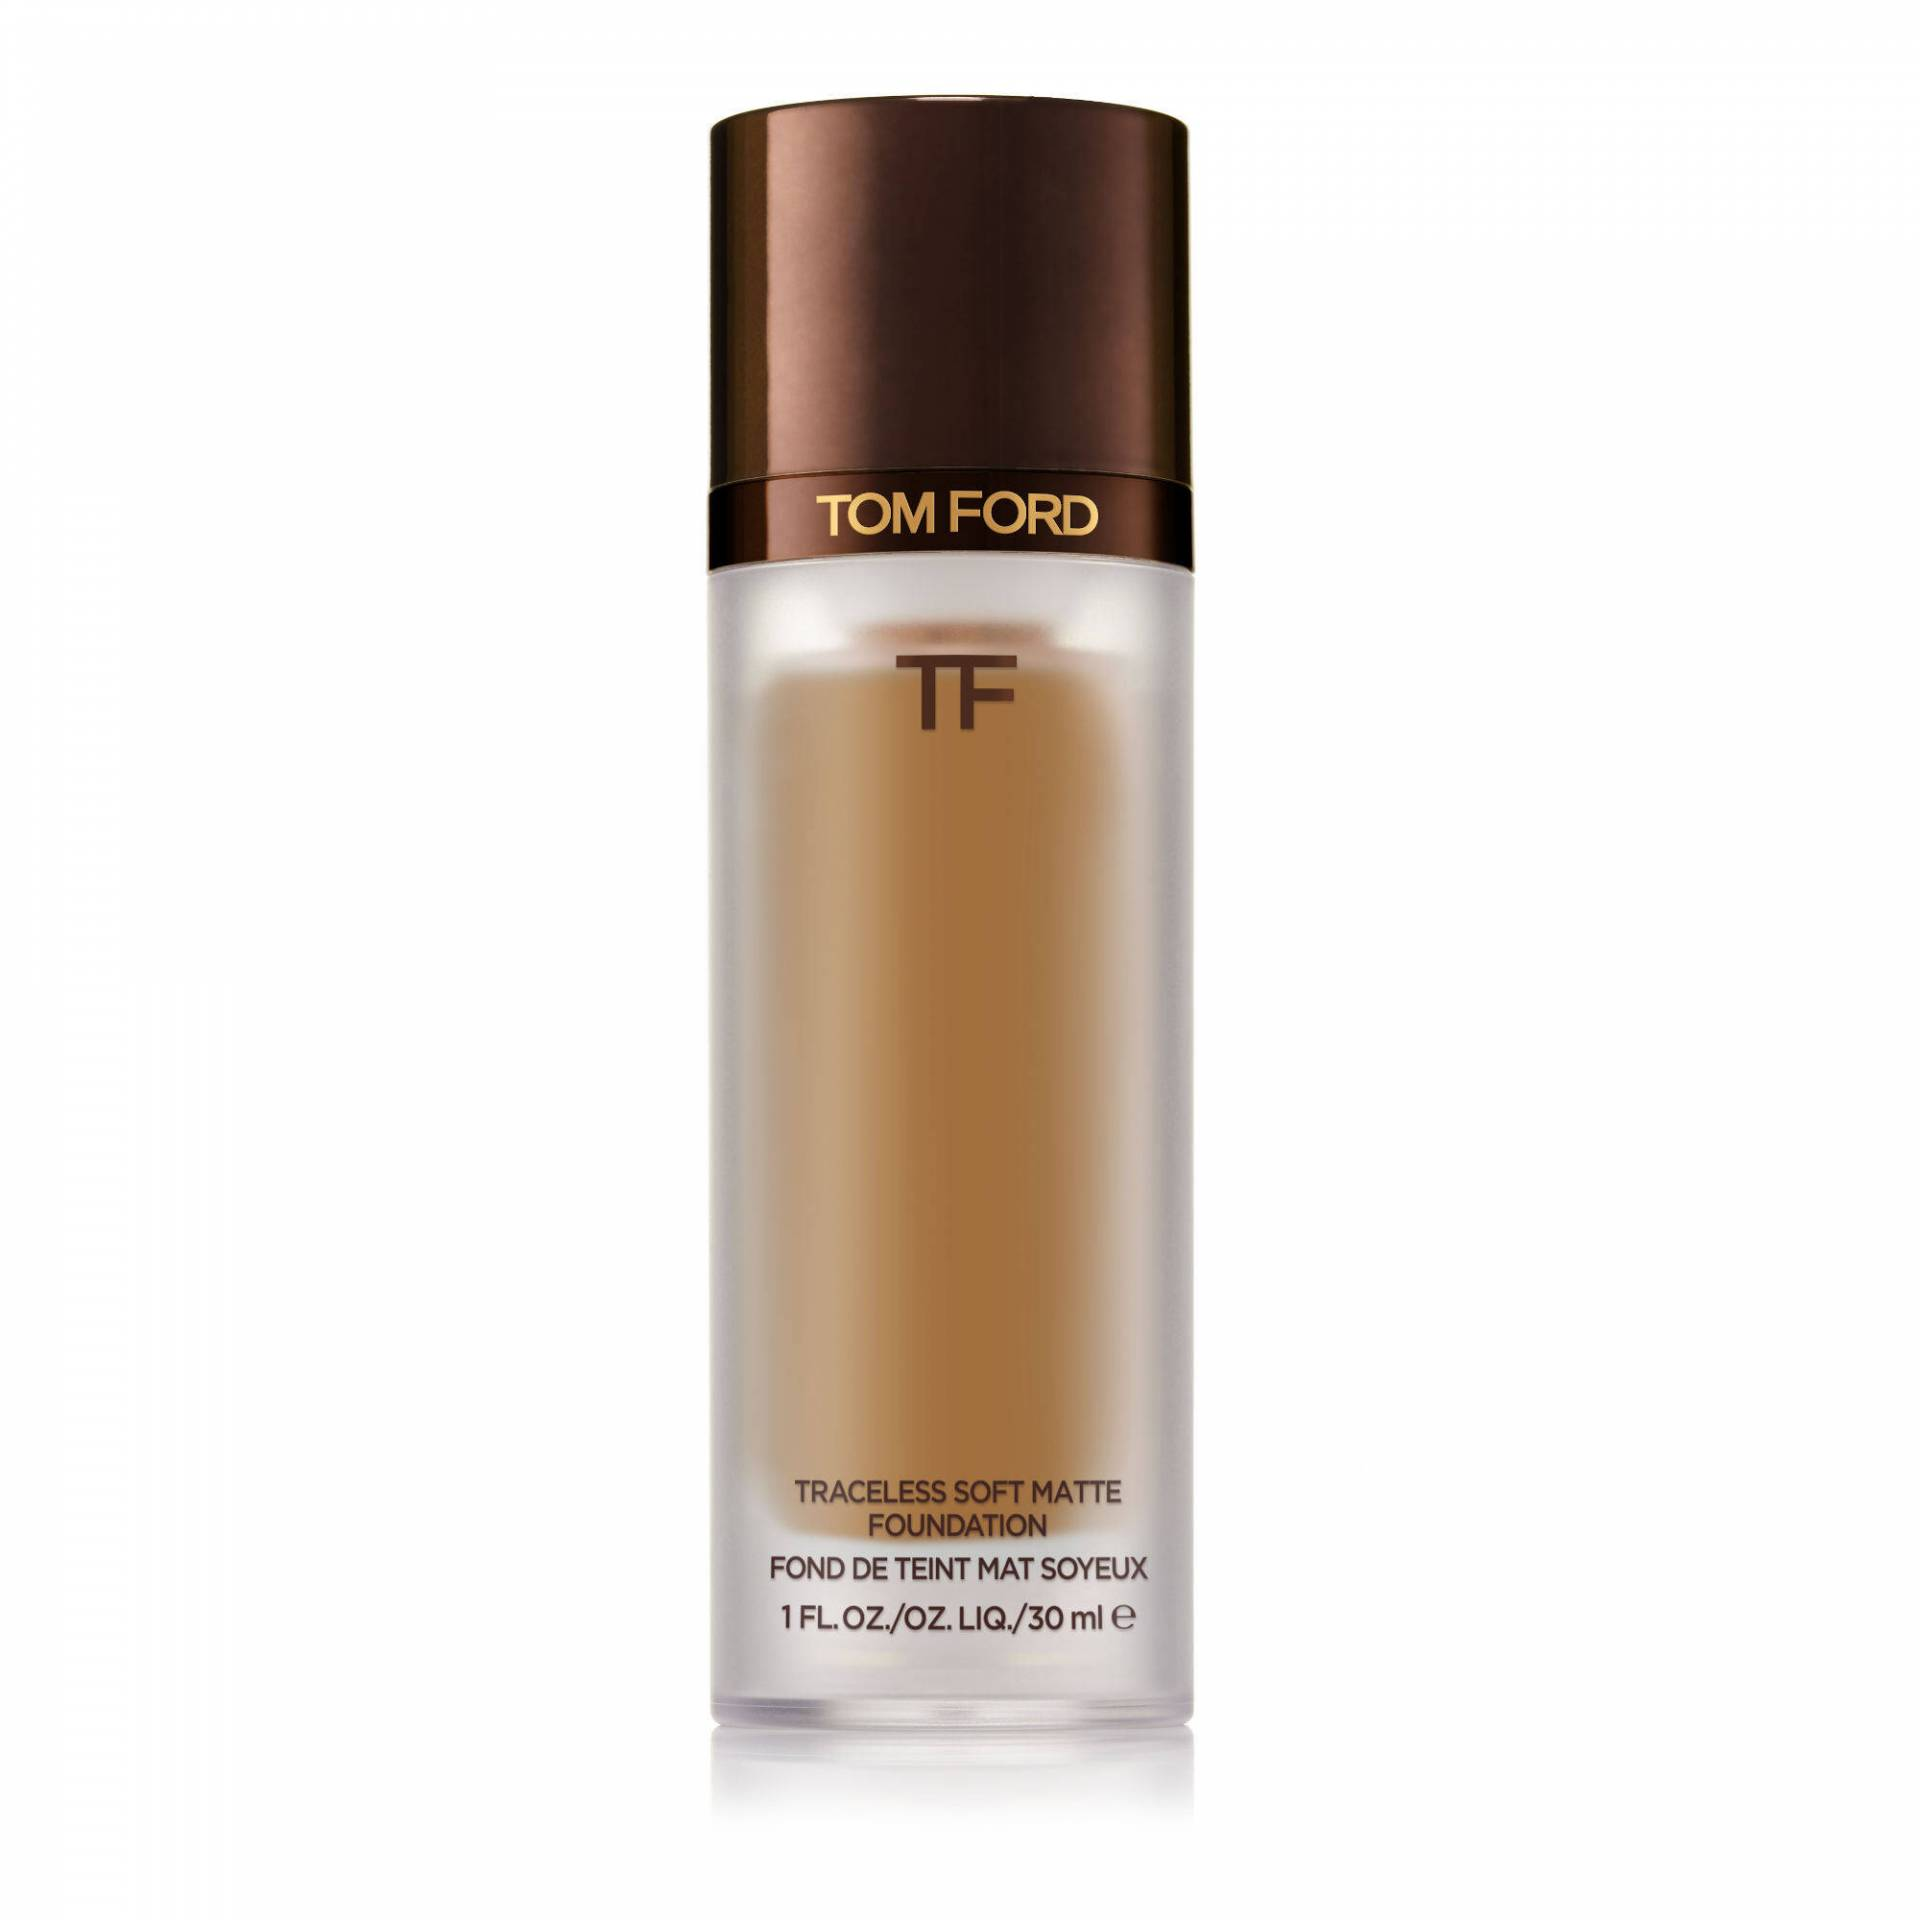 TOM FORD Traceless Soft Matte Foundation (10.5 Mocha | 30 ml) Make Up, Gesicht, Foundation Cosmetics, Face von TOM FORD